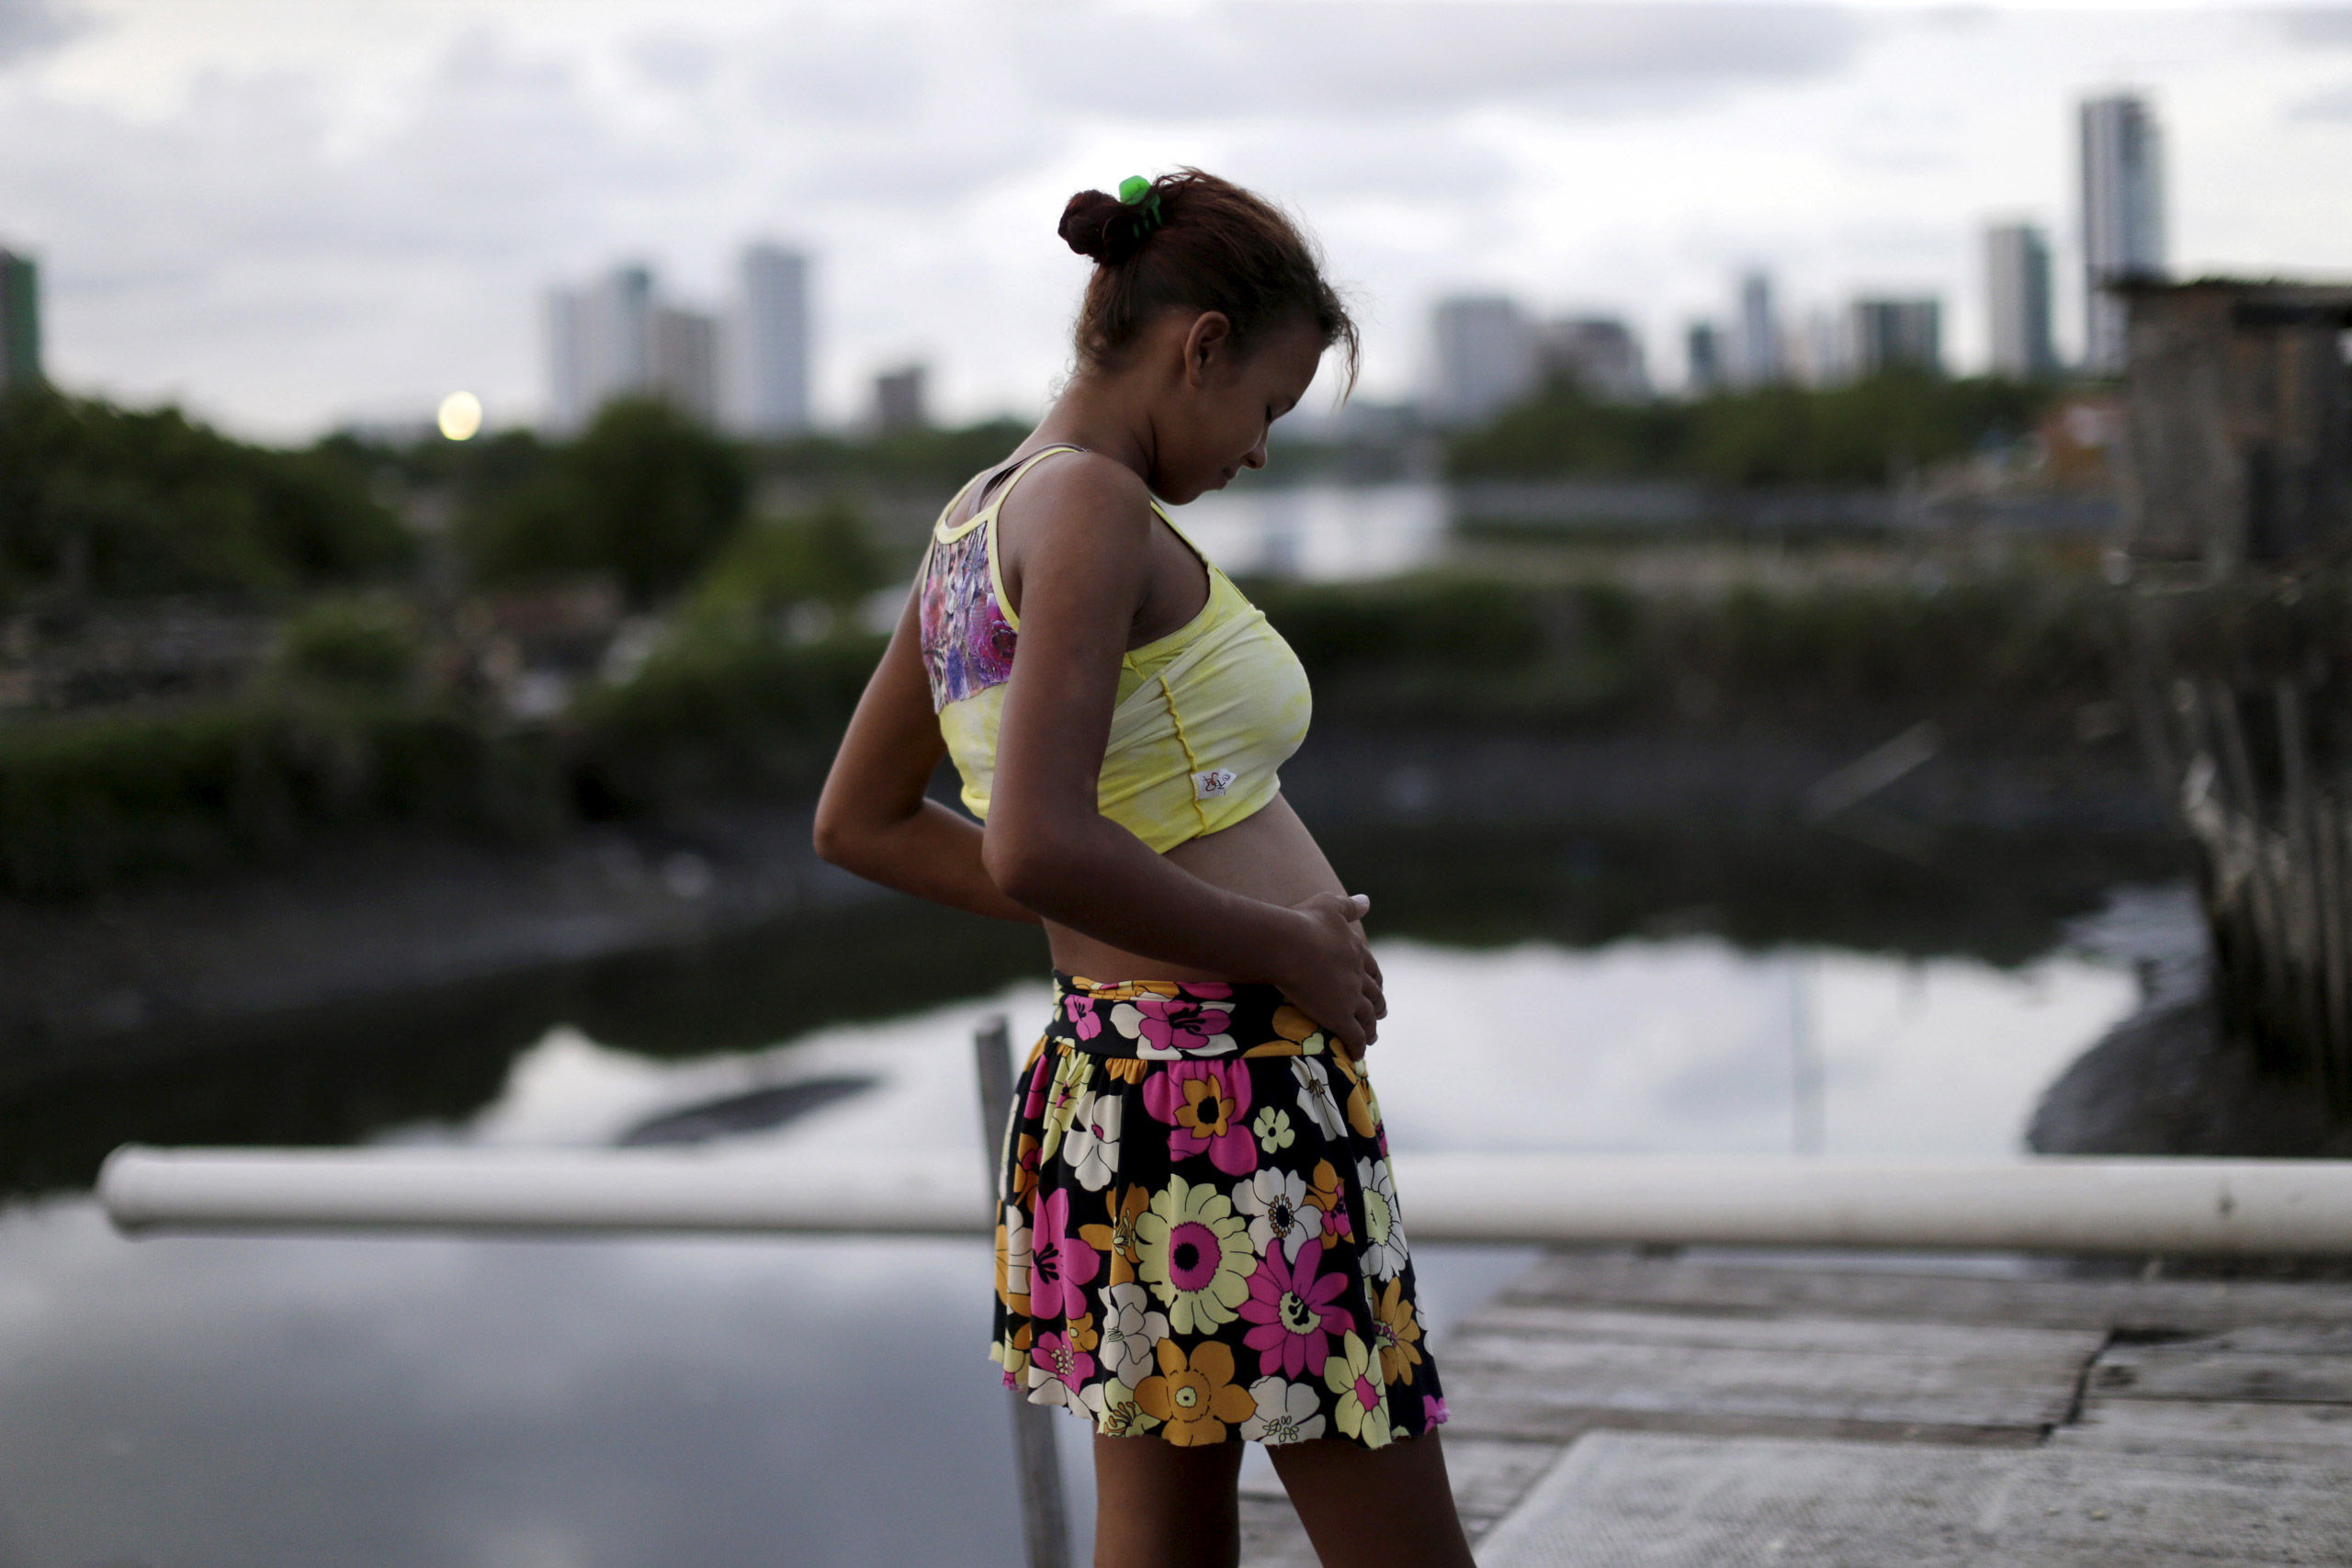 Eritania Maria, who is six months pregnant, is seen in front of her house at a slum in Recife, Brazil, on Feb. 2, 2016.